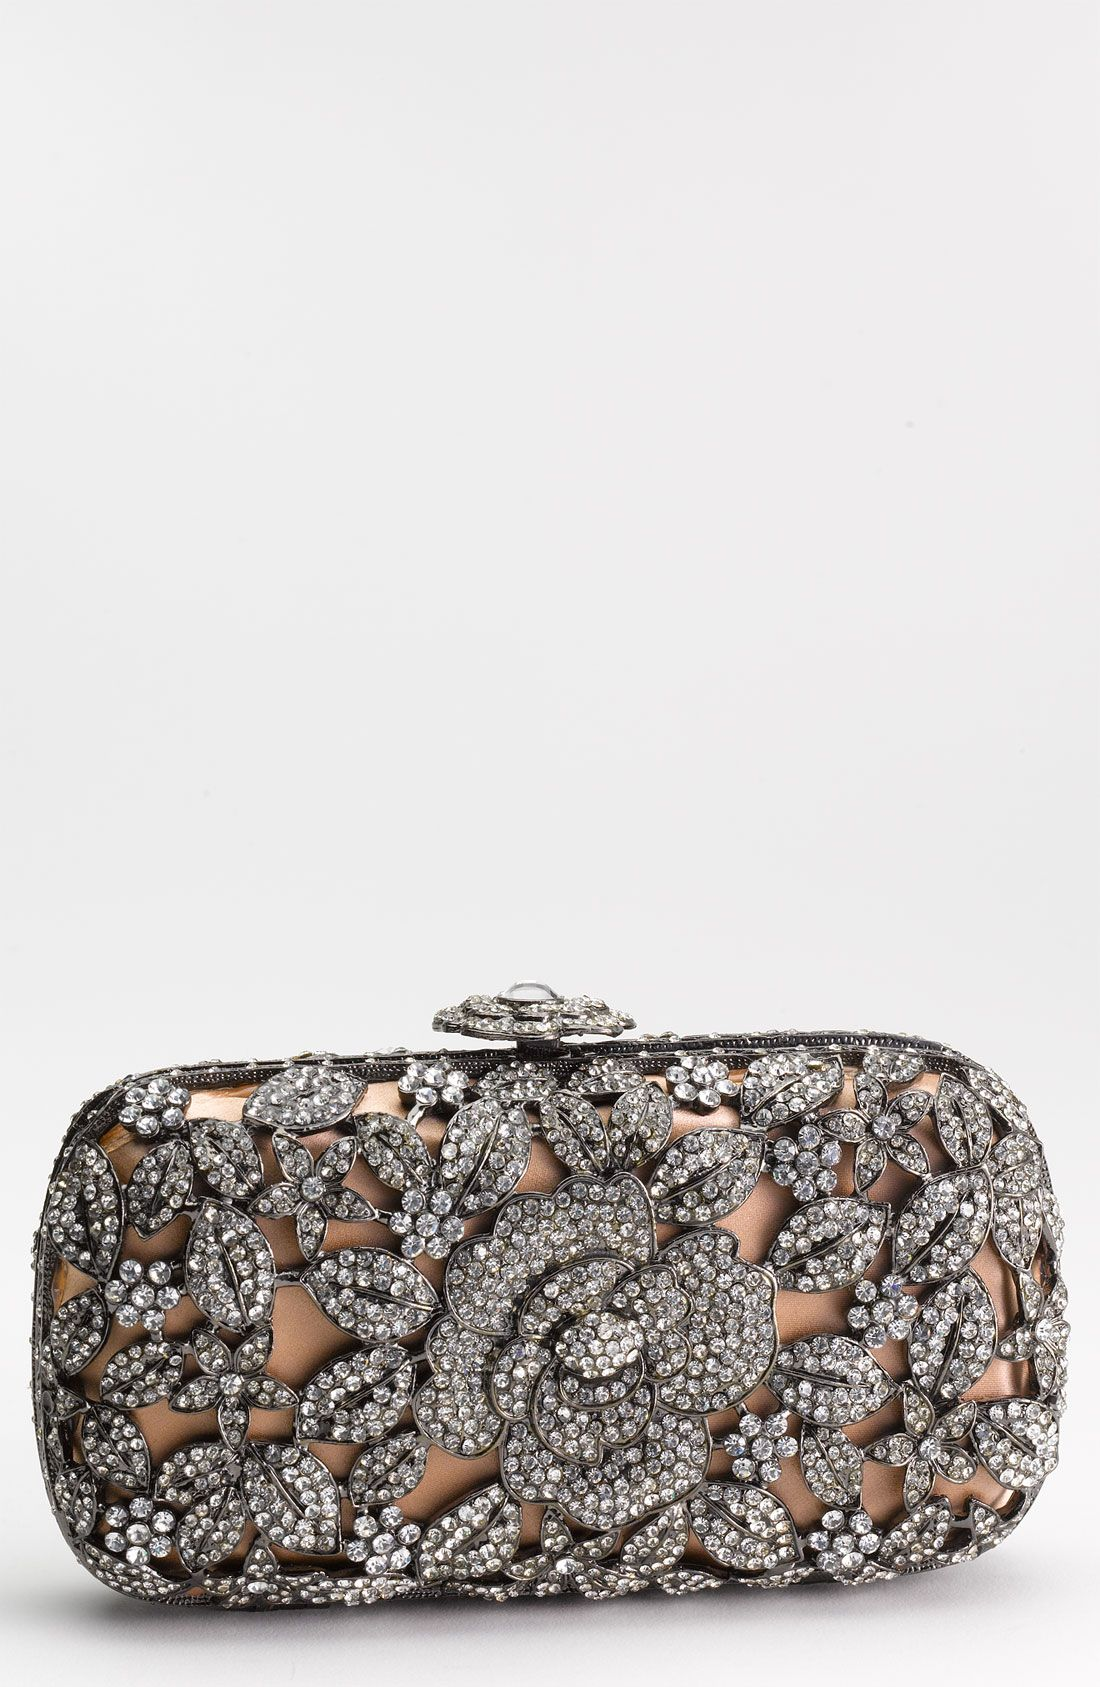 2db6c16cc8 Natasha Couture Crystal Caged Floral Clutch | Nordstrom | Wedding ...